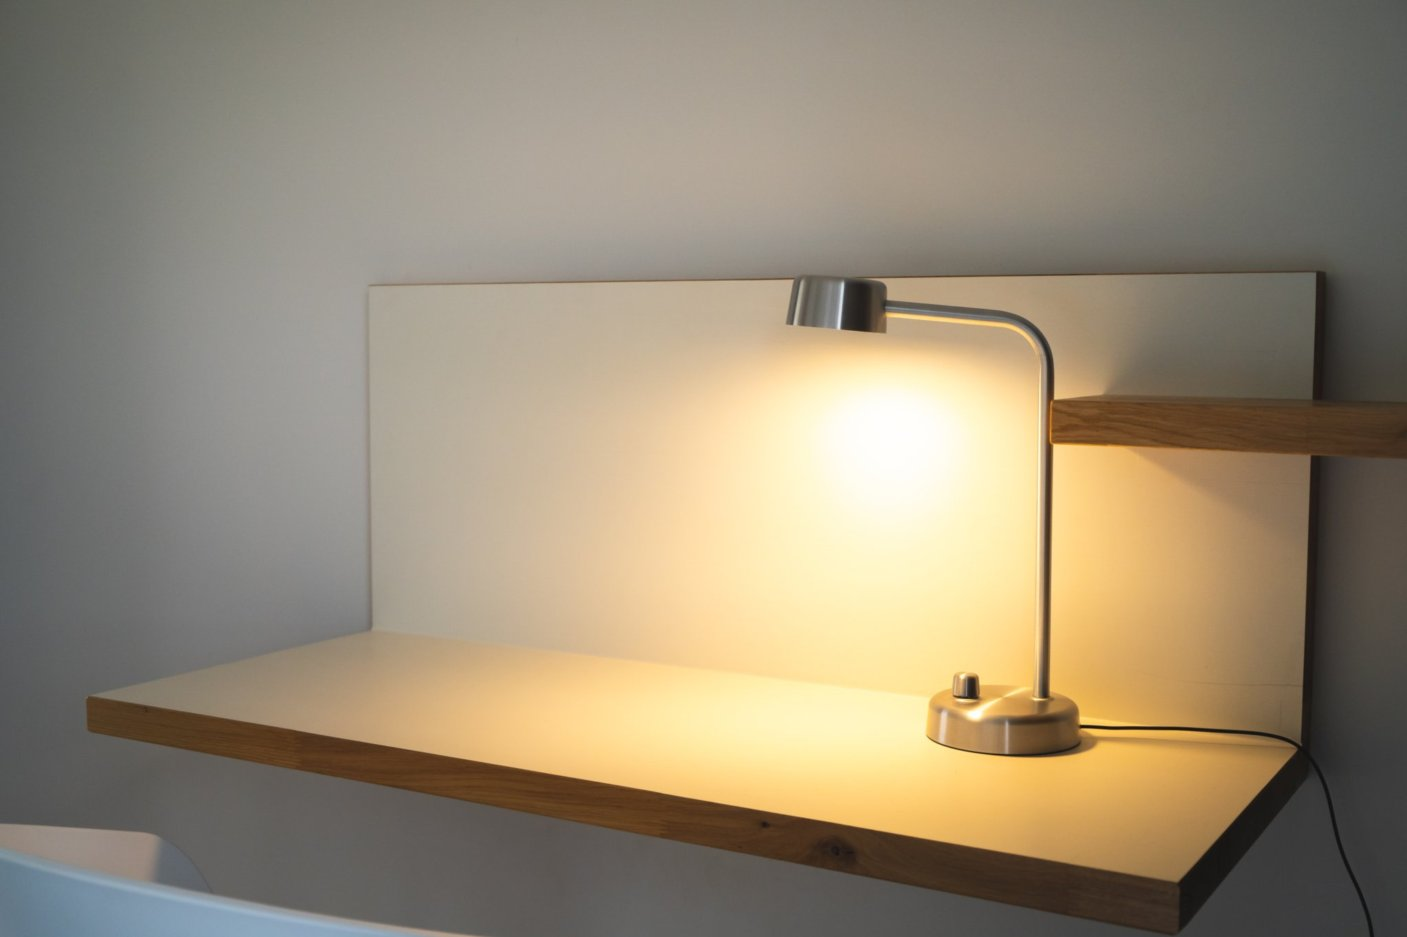 Bedstand with lamp